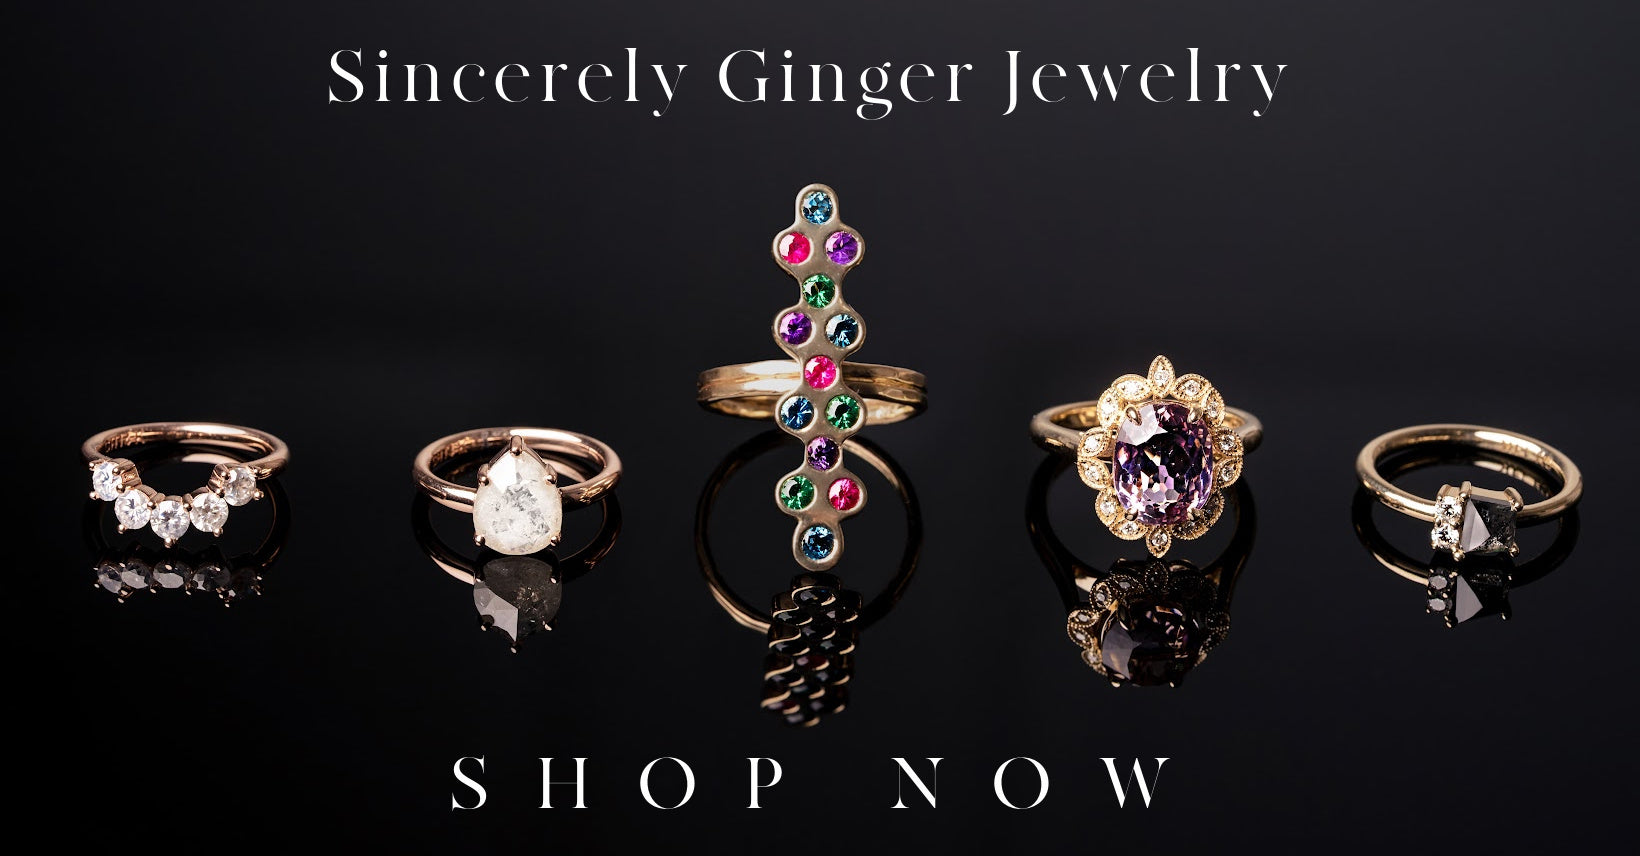 Shop Sincerely Ginger Jewelry